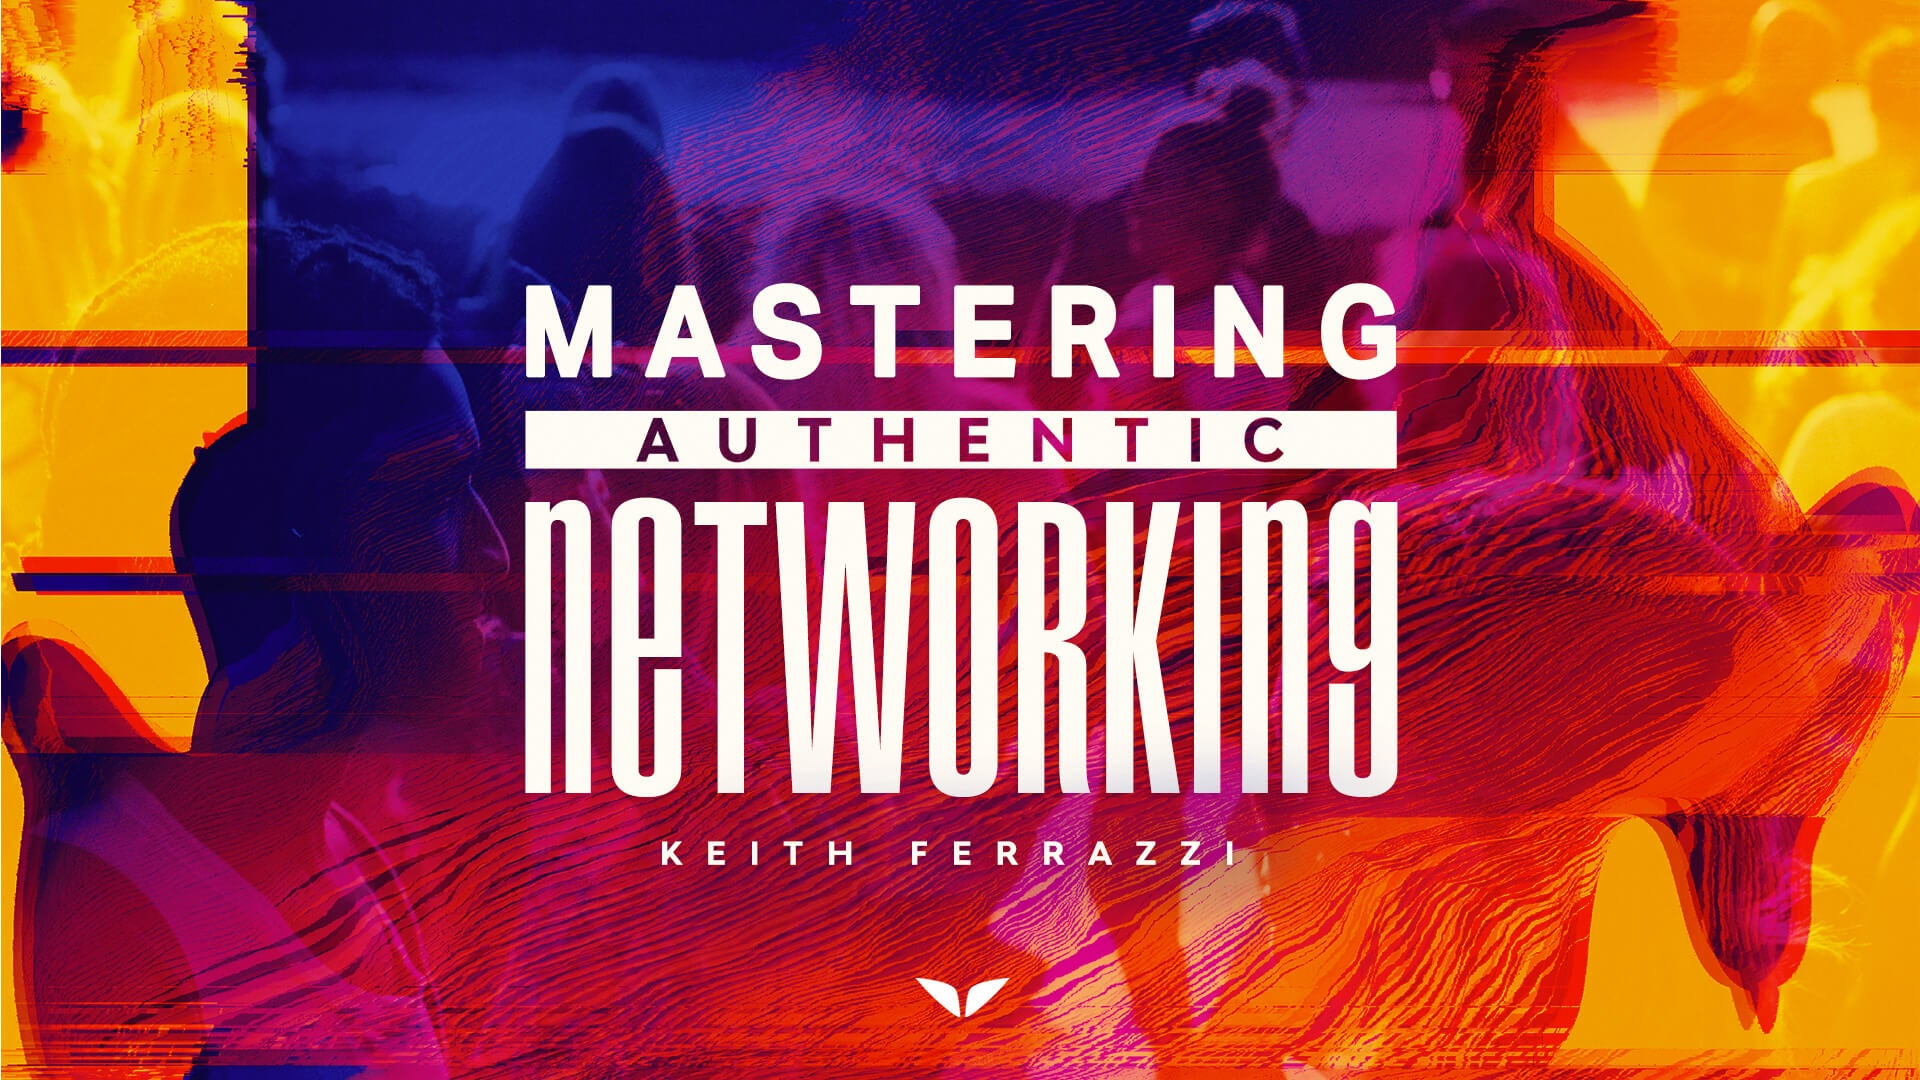 Mastering Authentic Networking